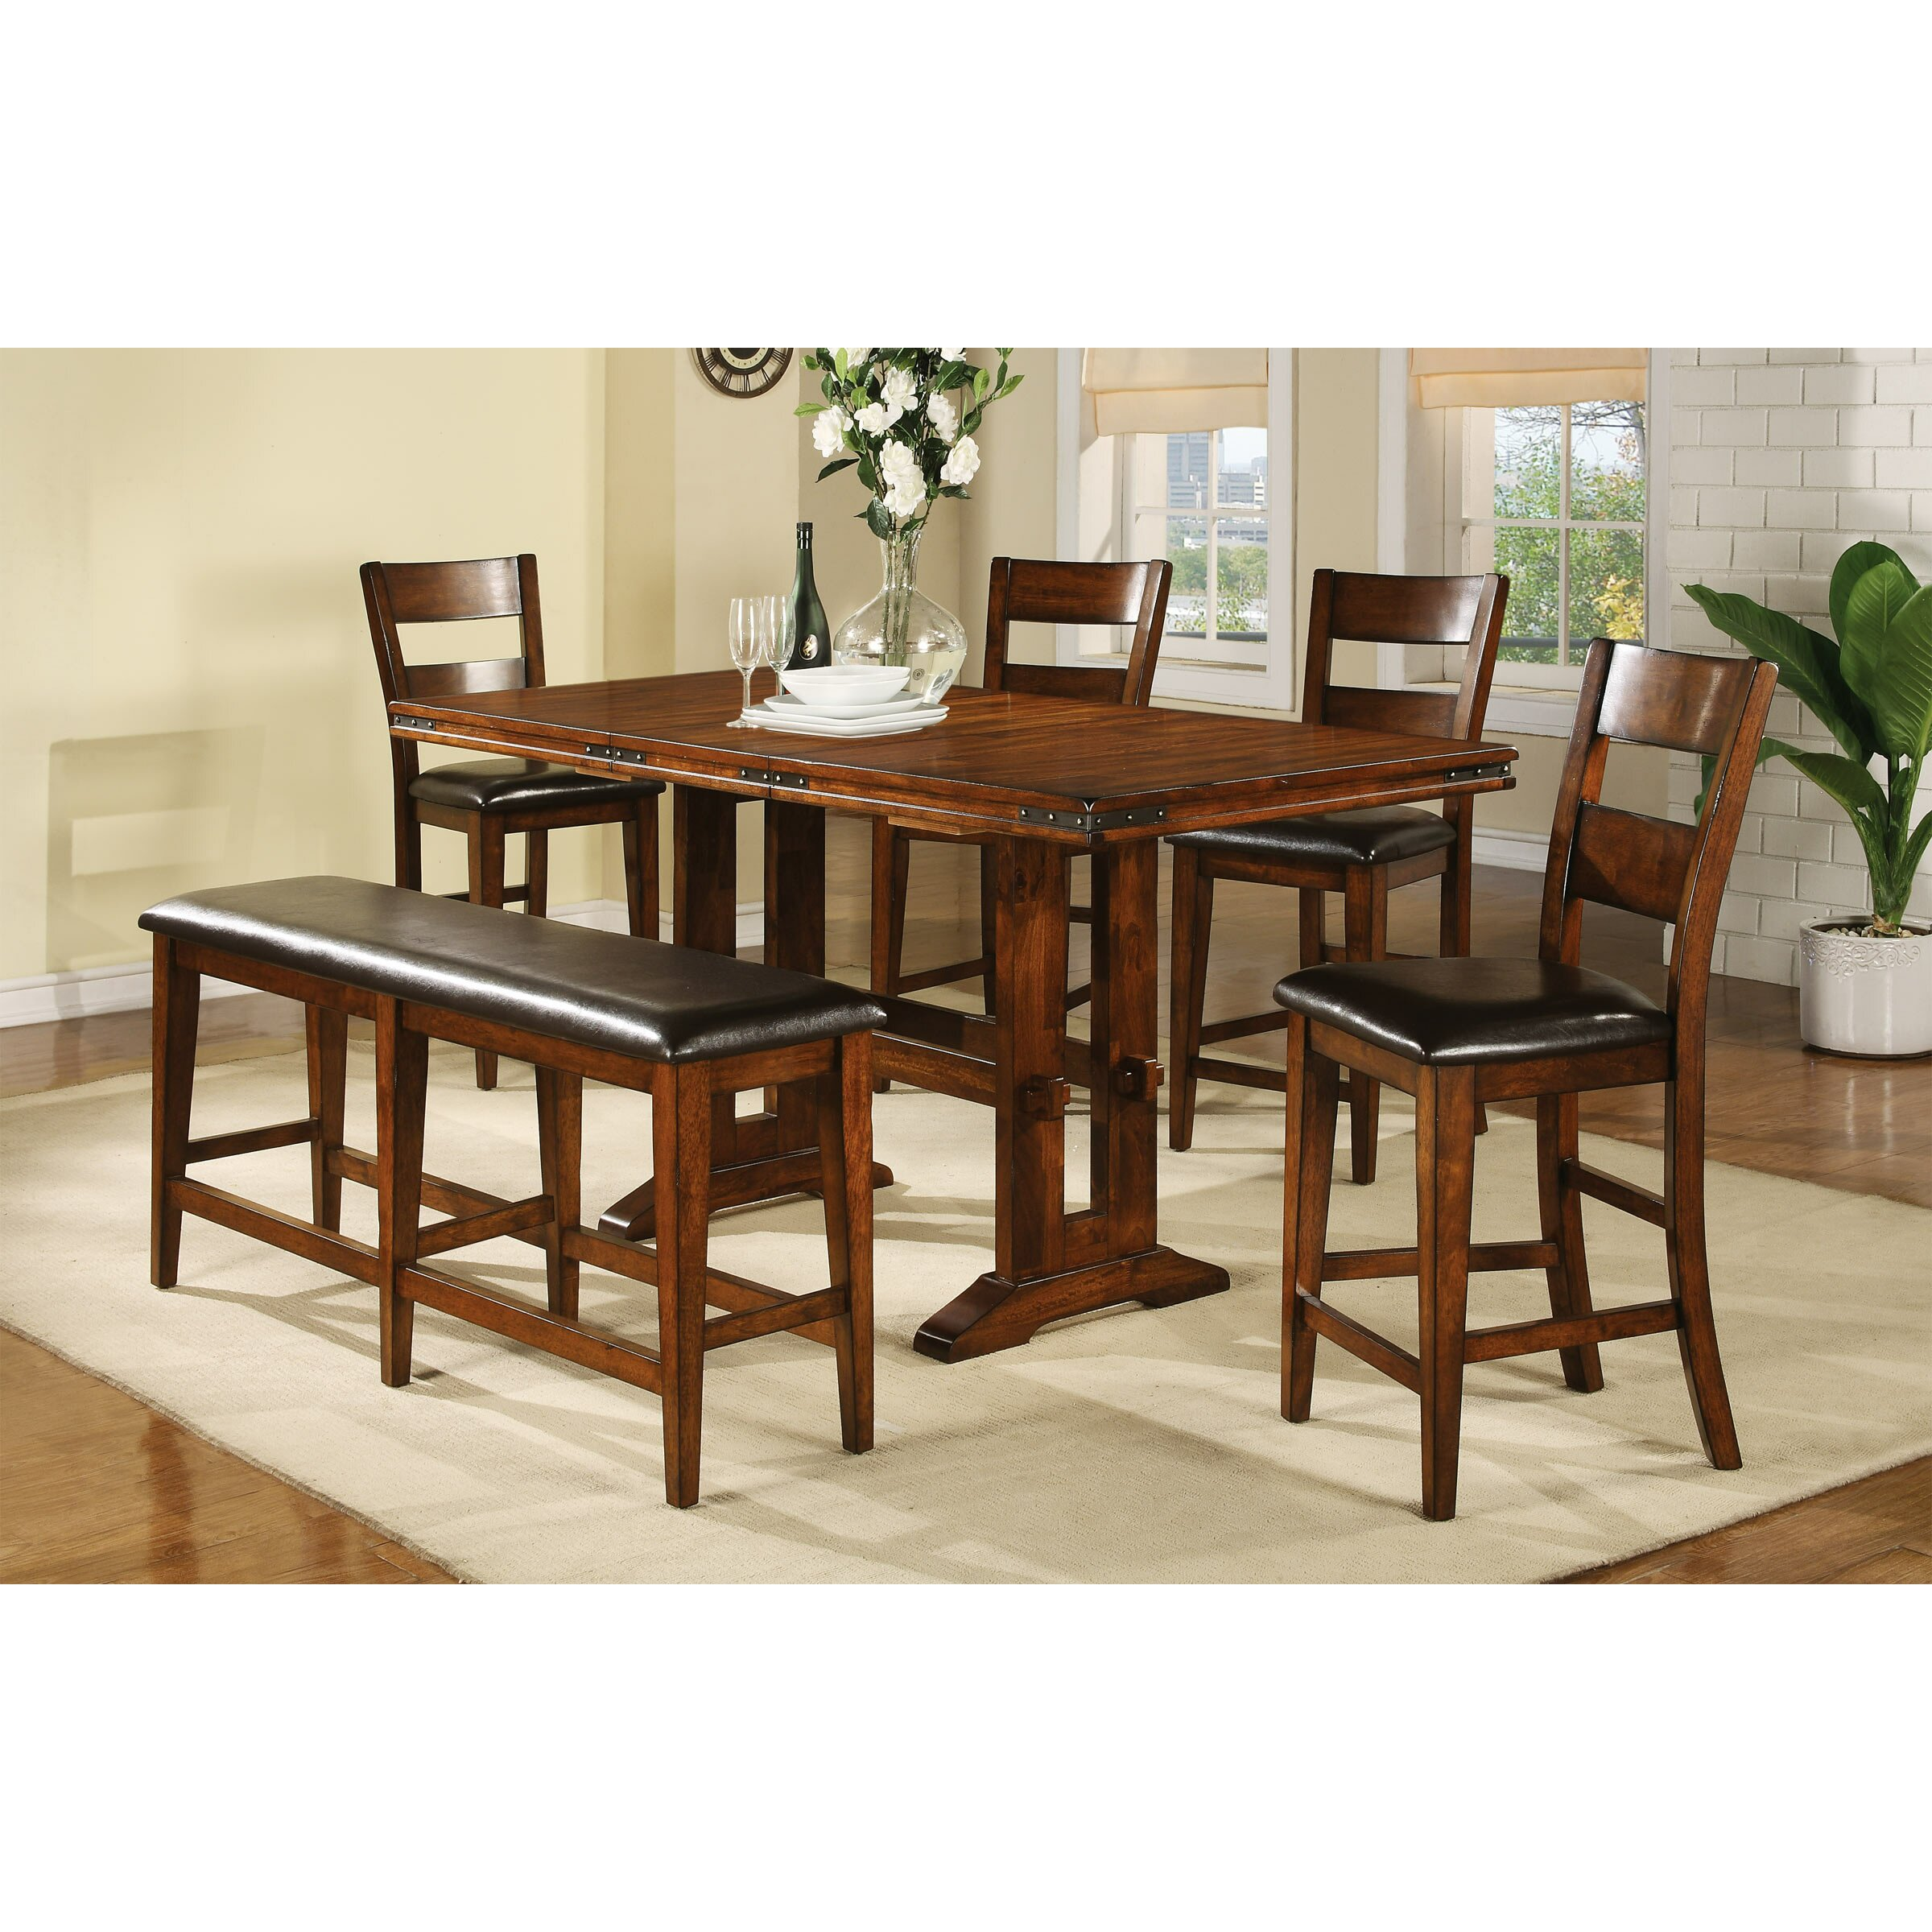 Loon Peak Agatha Counter Height Extendable Dining Table  : Loon Peak Agatha Counter Height Extendable Dining Table LOON1761 from www.wayfair.com size 2400 x 2400 jpeg 623kB